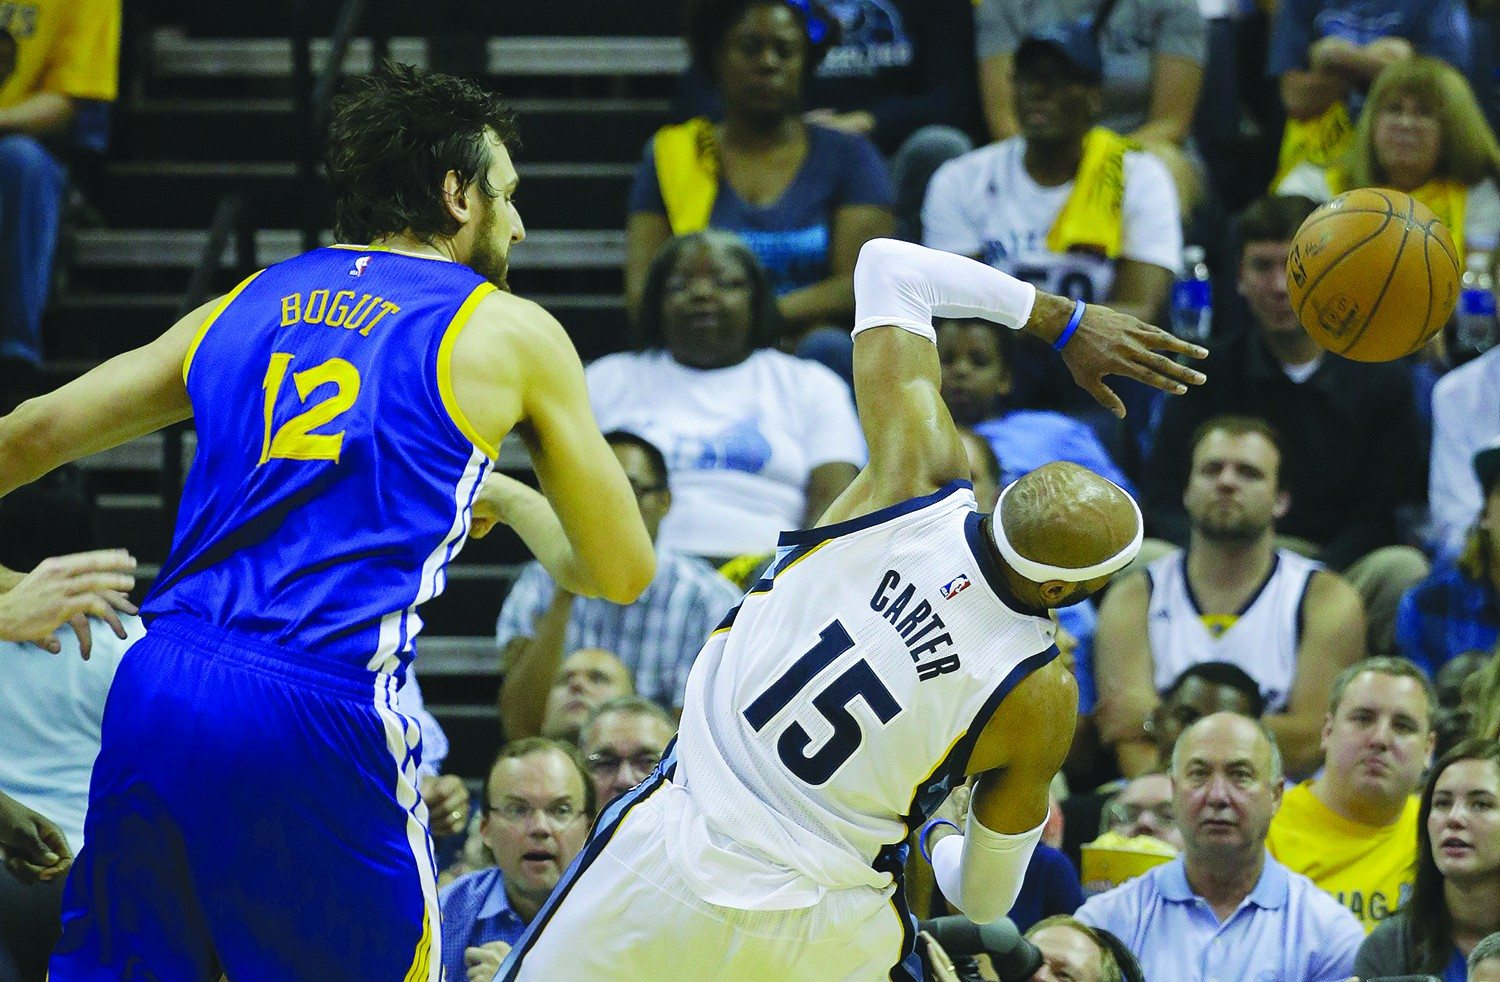 Mark Humphrey/APWarriors enforcer Andrew Bogut swats away a shot by Vince Carter during Golden State's Game 4 victory over the Memphis Grizzlies.